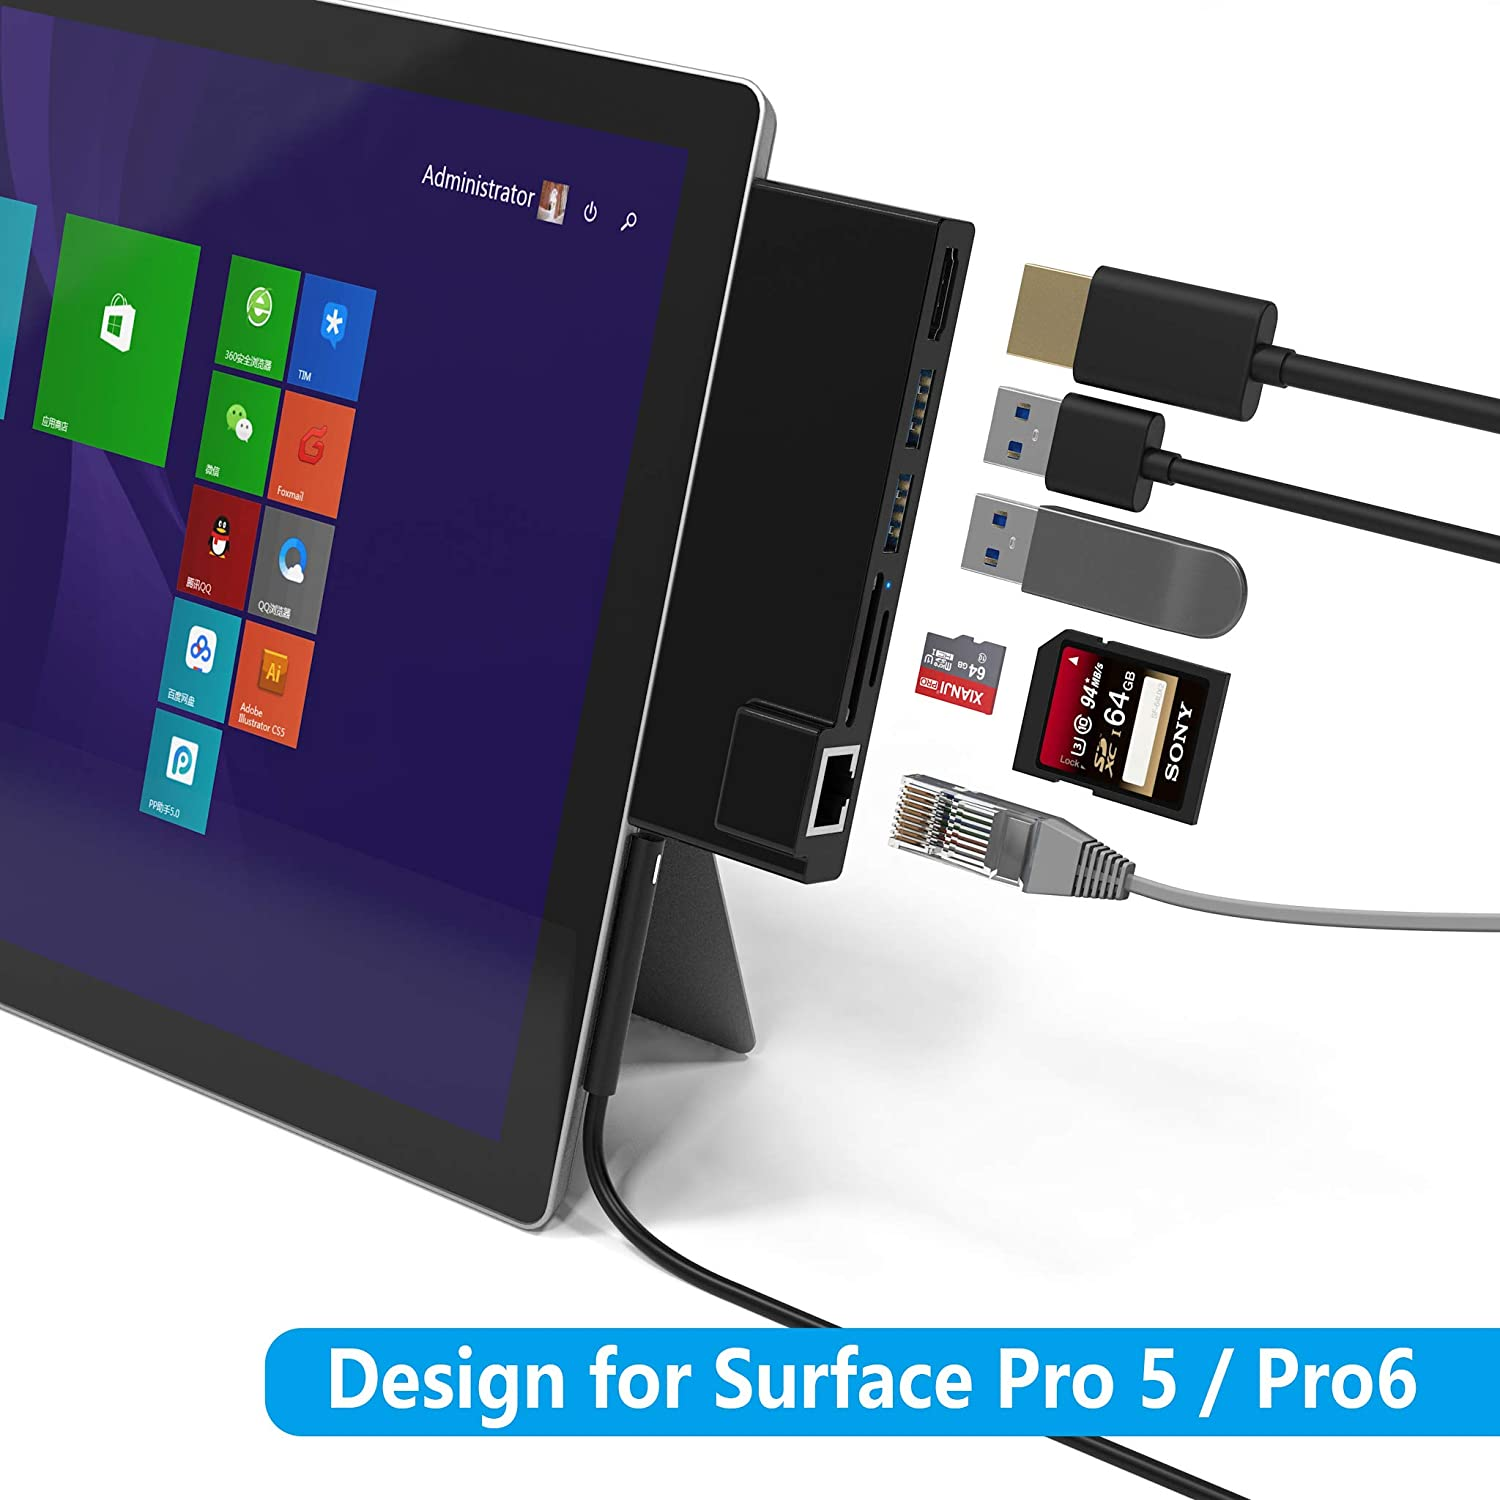 Portable Dock for Surface Pro 4/5/6 USB Hub Docking Station with 1000M Ethernet Port, 4K HDMI, 2 x USB 3.0 Ports, SD/Micro SD Card Reader,LAN Adapter for The 4th/5th/6th-gen Surface Pro 2016/2017/2018